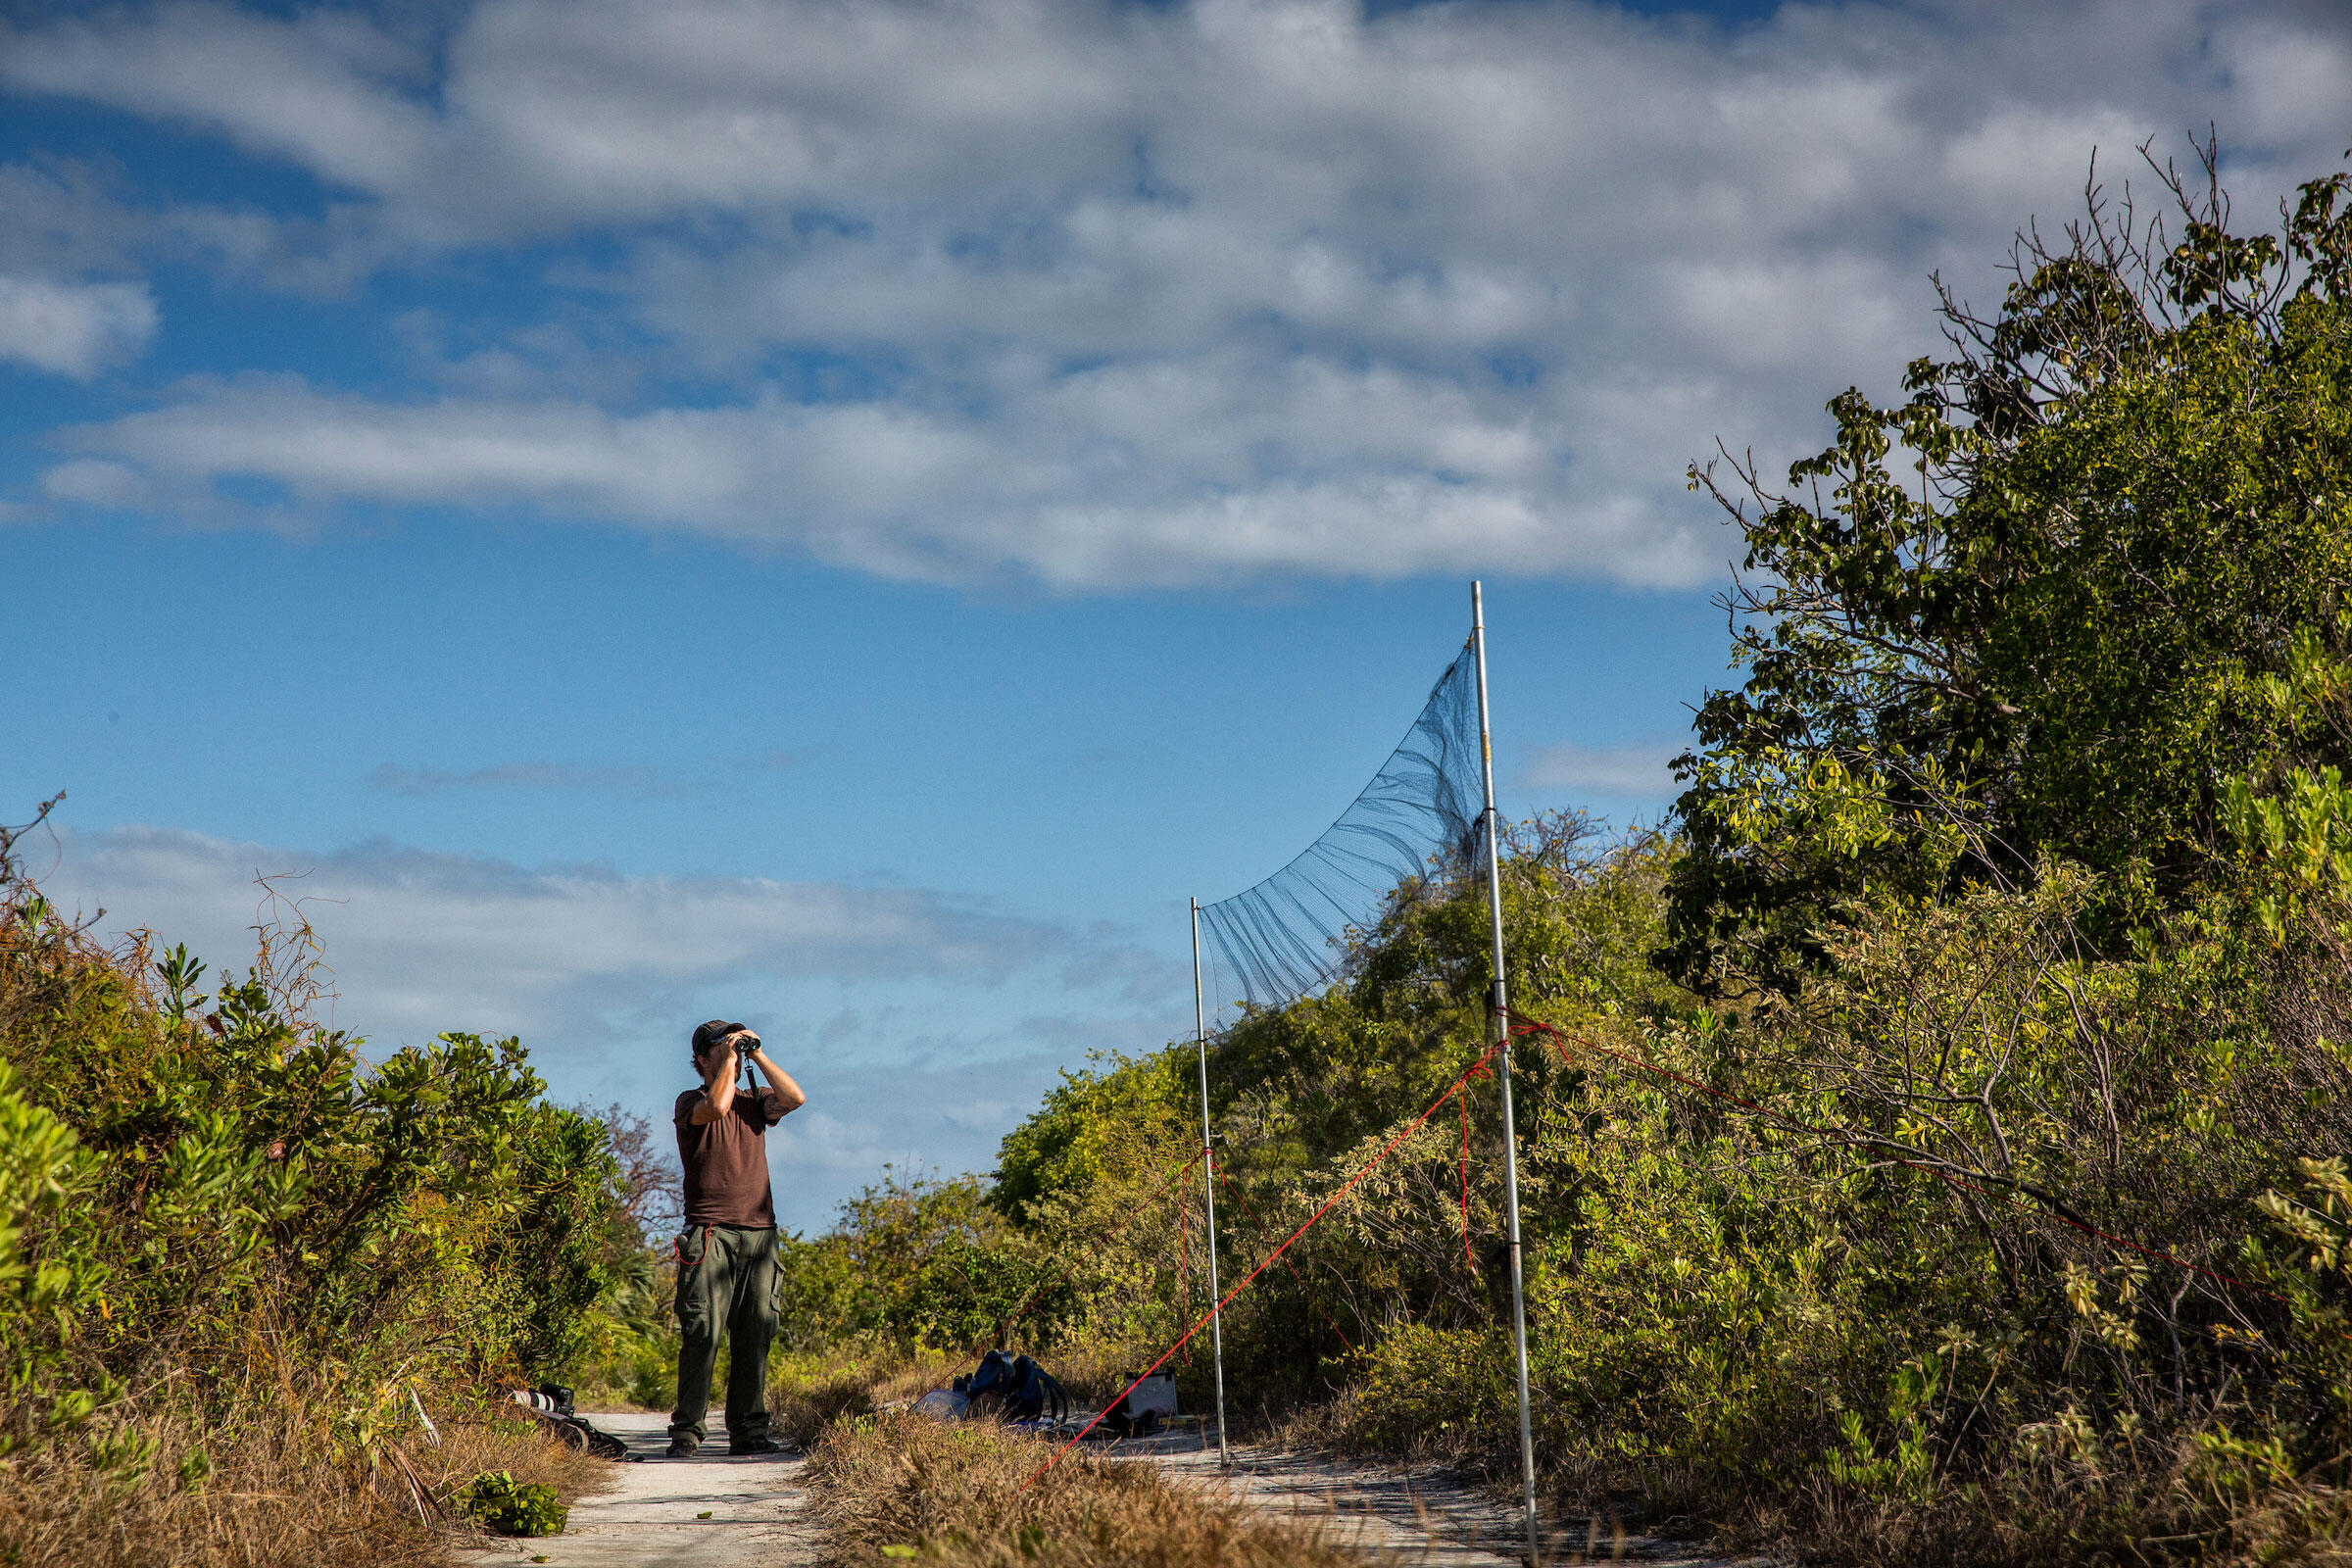 At sunrise, Smithsonian scientist Nathan Cooper plays a Kirtland's Warbler call to elicit a response from birds in the vicinity. This tips off his crew on where to set up a mist net to capture breeding individuals and deploy nanotags. Karine Aigner